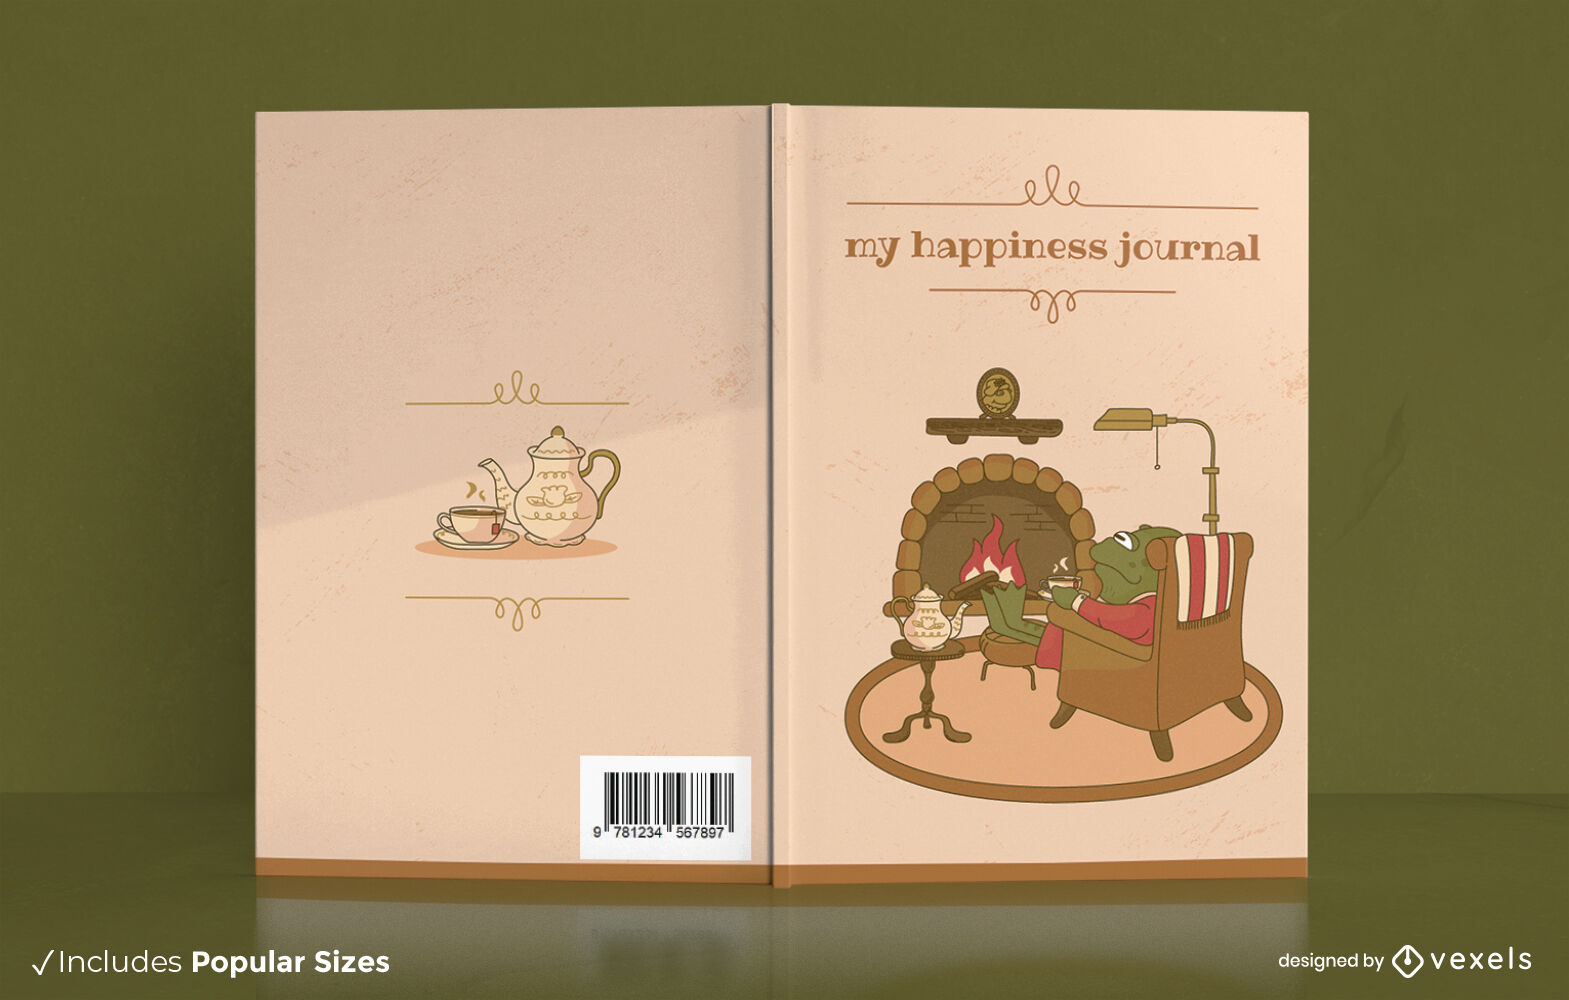 Frog animal in cozy fireplace book cover design